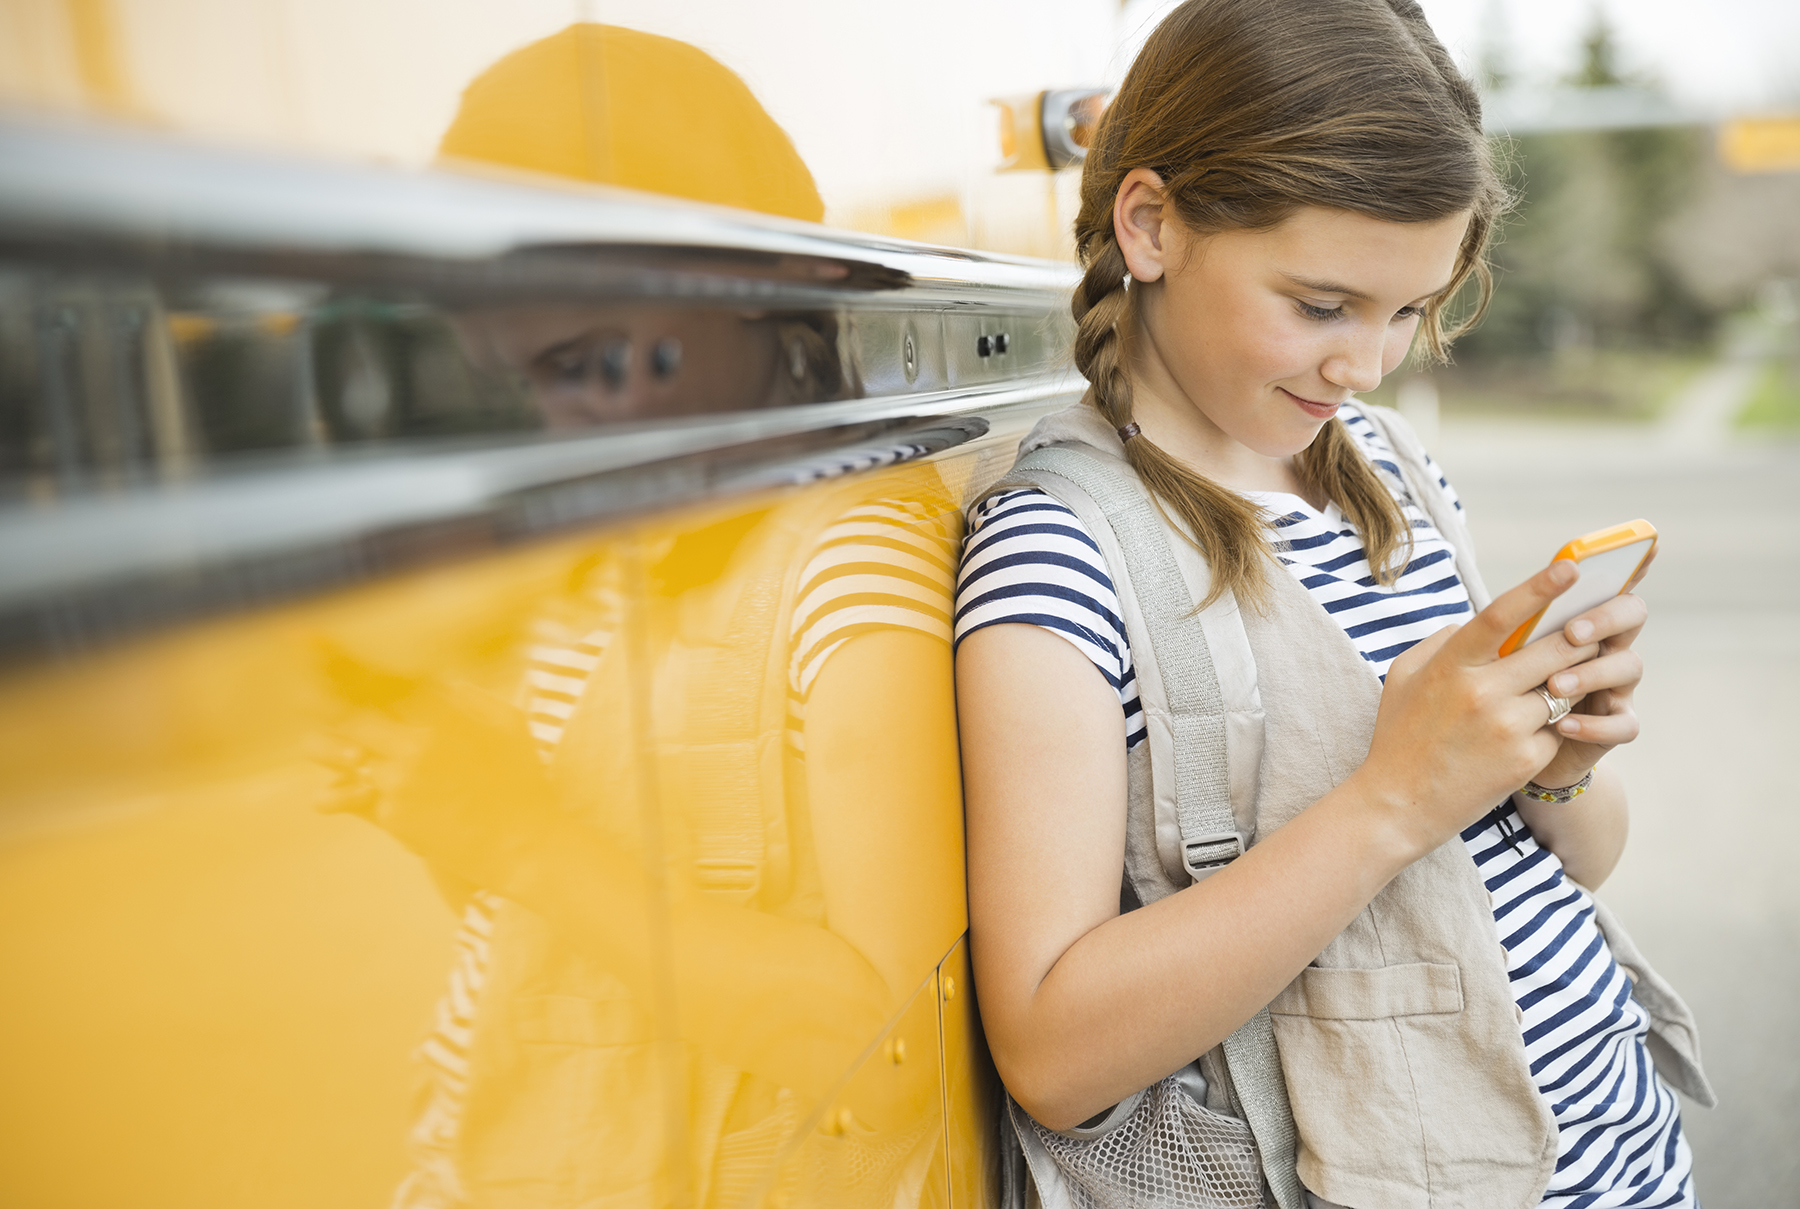 Young girl with smartphone